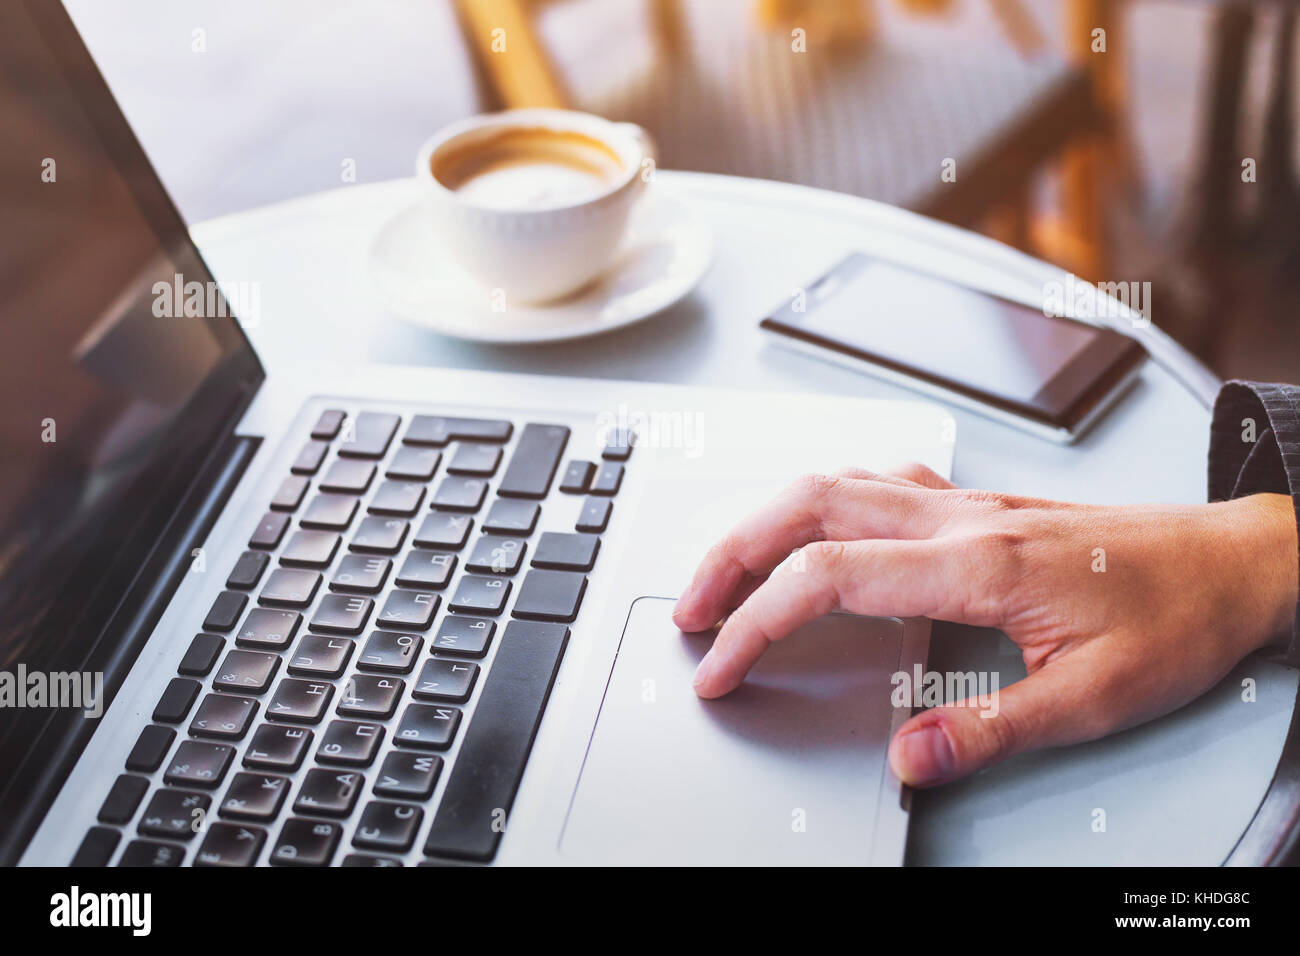 using internet on computer, closeup of hand - Stock Image